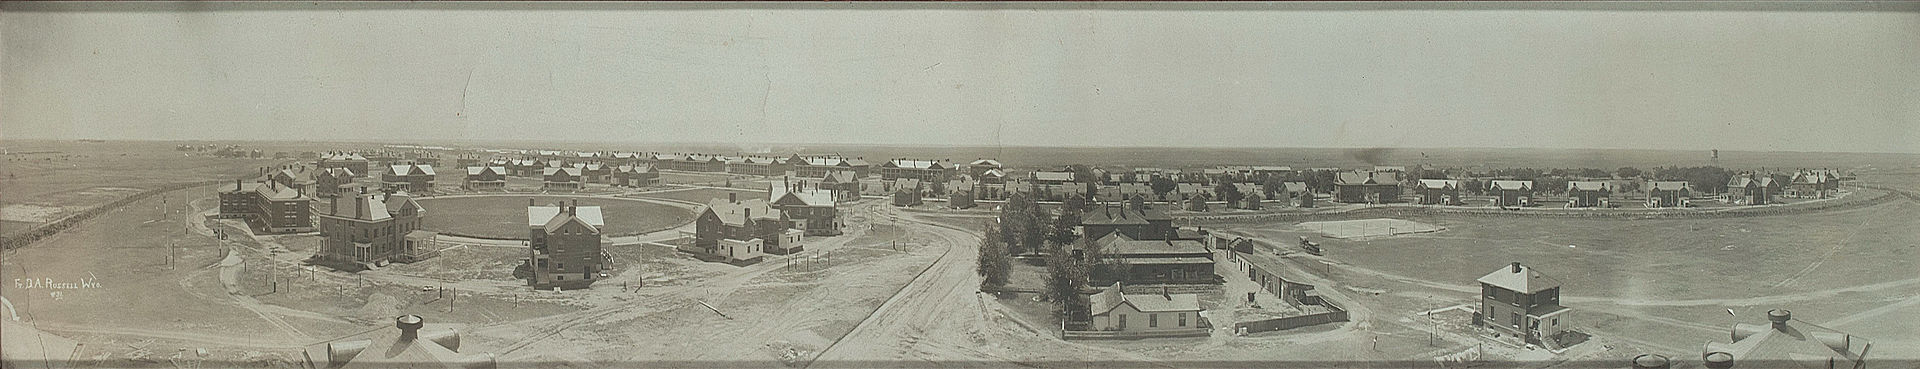 Aerial view of Fort Russell, circa 1890s-1900s